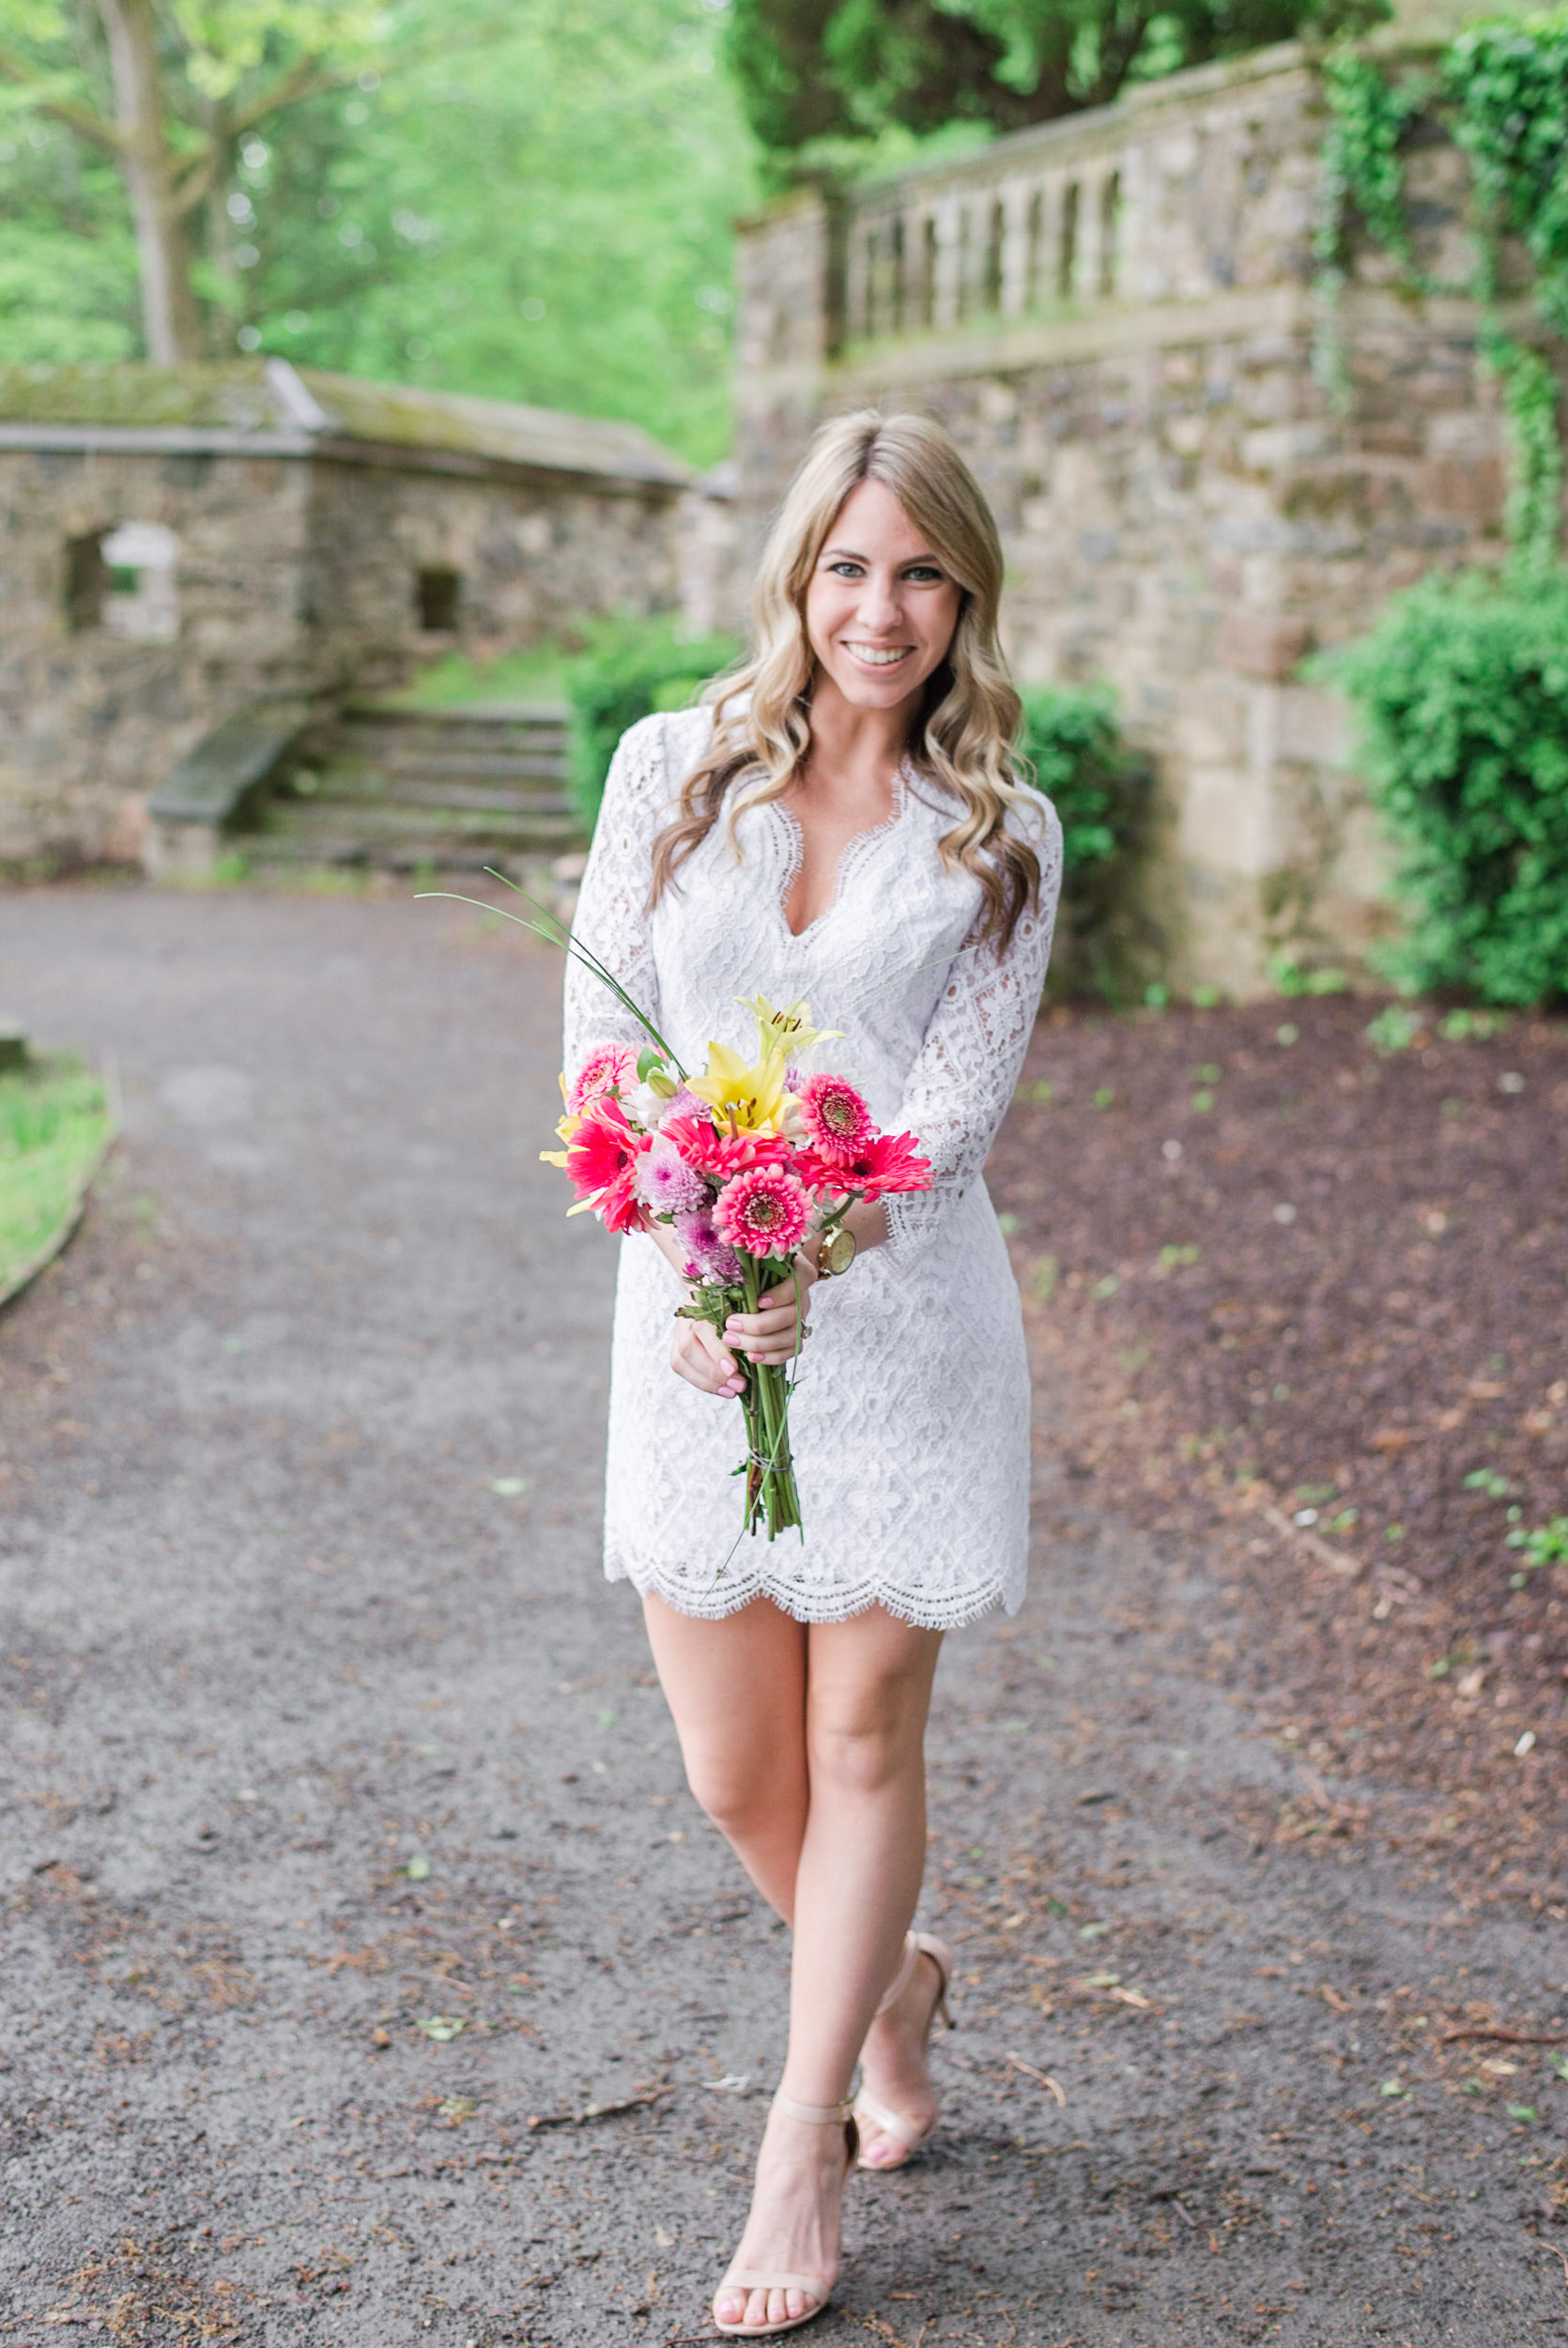 The_Style_Chronoicles_Blog_Hunting_Hill_Mansion_Fashion_Lifestyle_Pennsylvania_Bride_Bridal_Shower-3